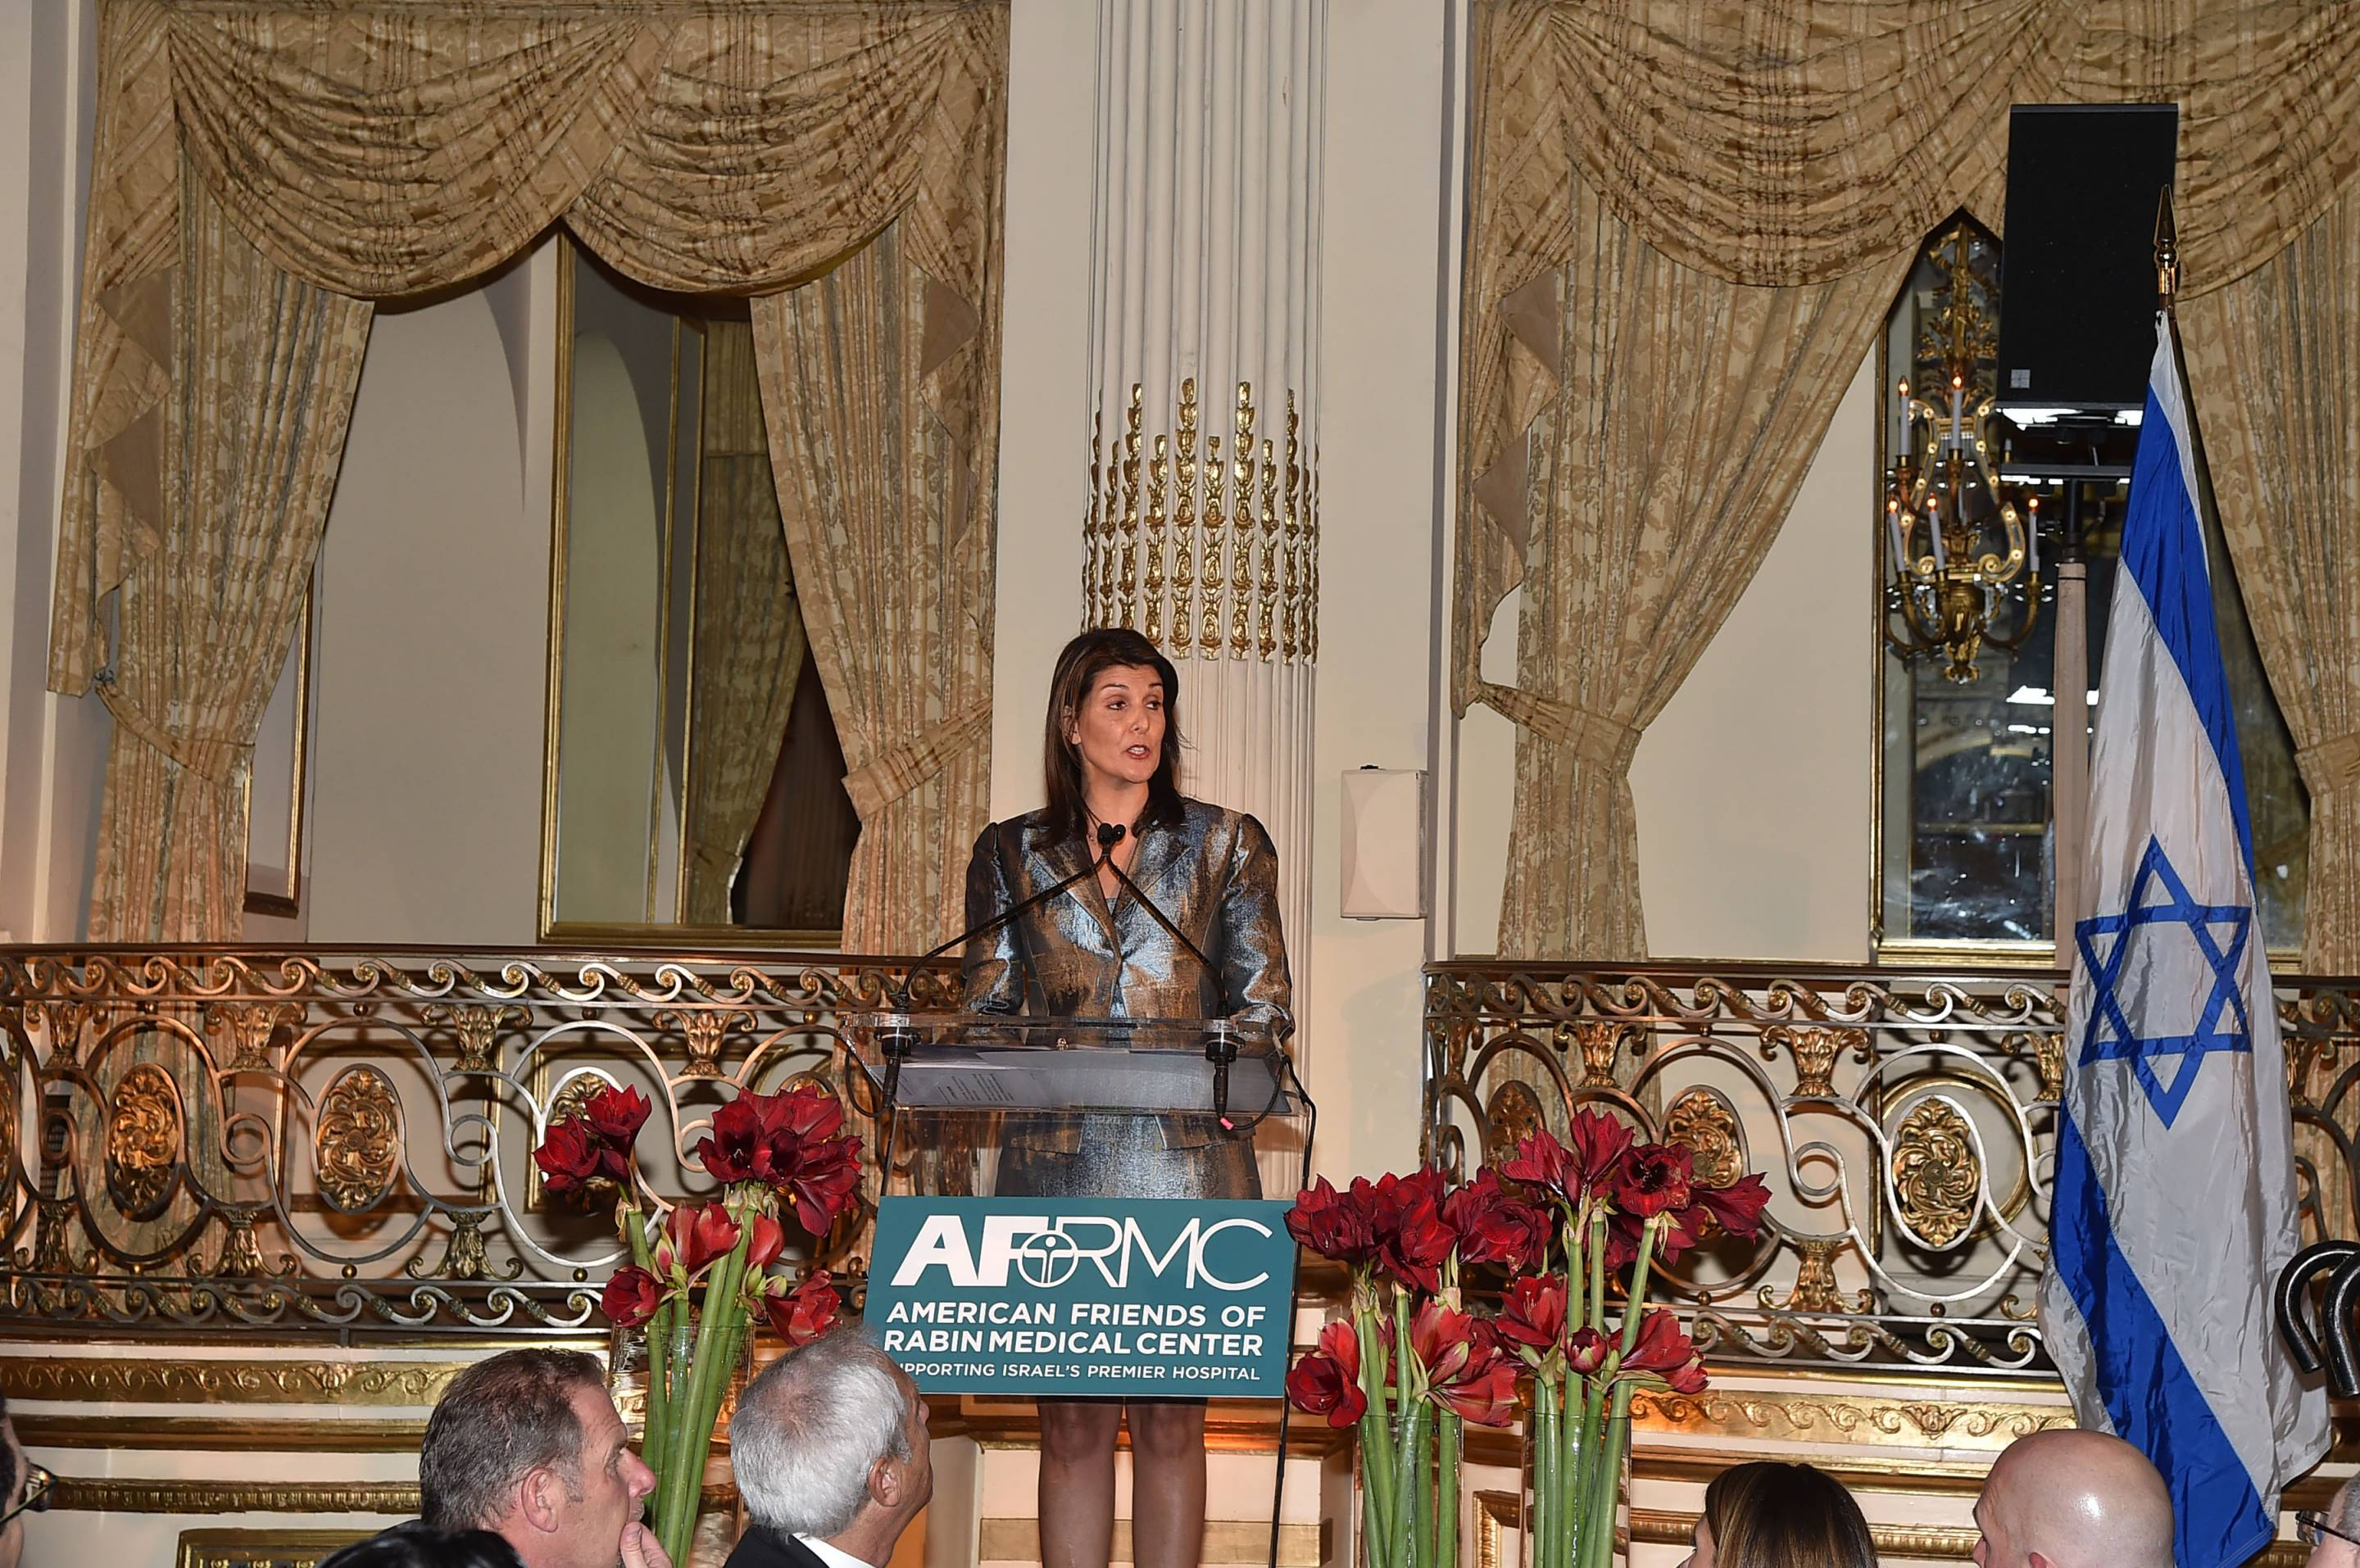 American Friends Of Rabin Medical Center 2018 Annual NYC Gala